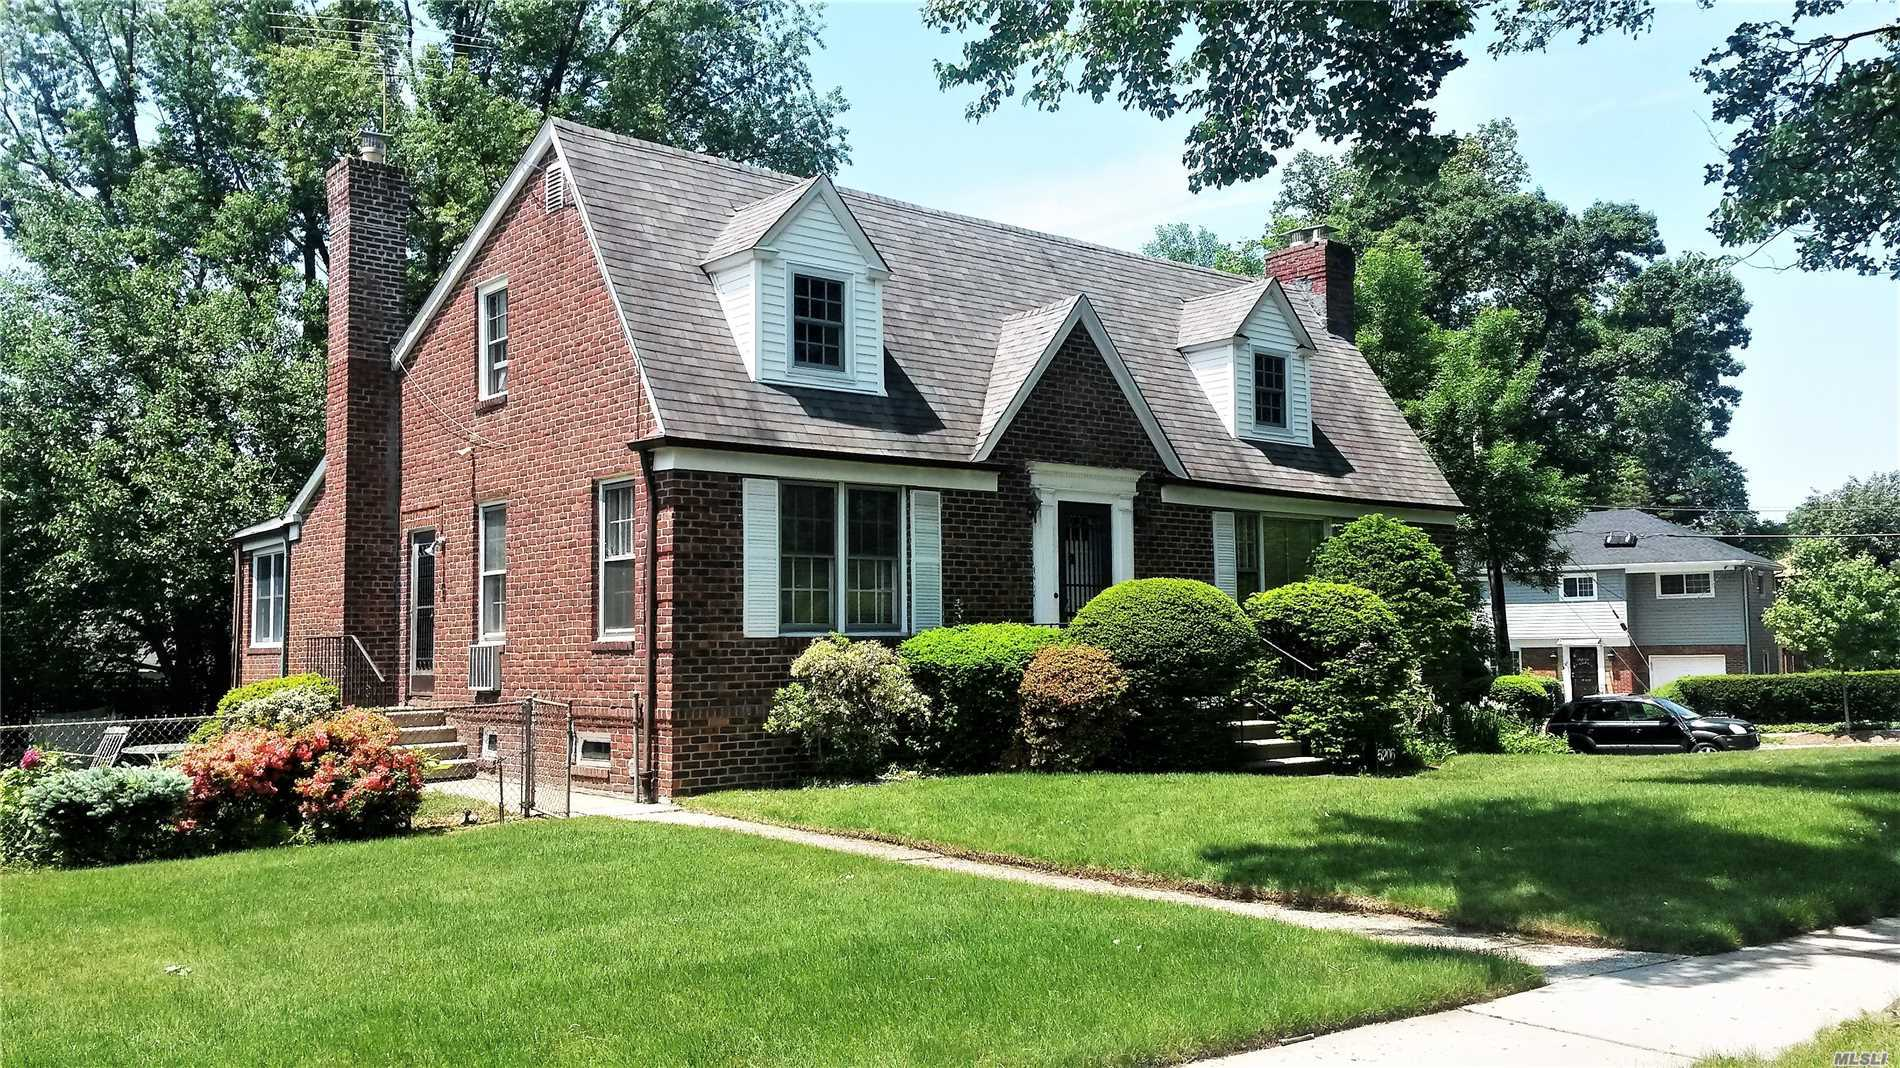 This House In Douglaston Sits On A 112' X 105' Irreg Corner Property. Solid Brick Home, Perfect For Large Family, Spacious Rooms, Lots Of Windows And Closet Space. Two Fireplaces,  Hardwood Floors, Large Bedroom On First Floor, Three Large Bedrooms On 2nd Floor, Eat-In Kitchen, Sunken Lr, Formal Dr, Den, Large Finished Basement, 2 Full And 2 Half Baths, True Center Hall Entryway, Inground Sprinkler System, Beautiful Private Yard. Near Expressways, Shopping Centers And Lirr. District #26 Schools.